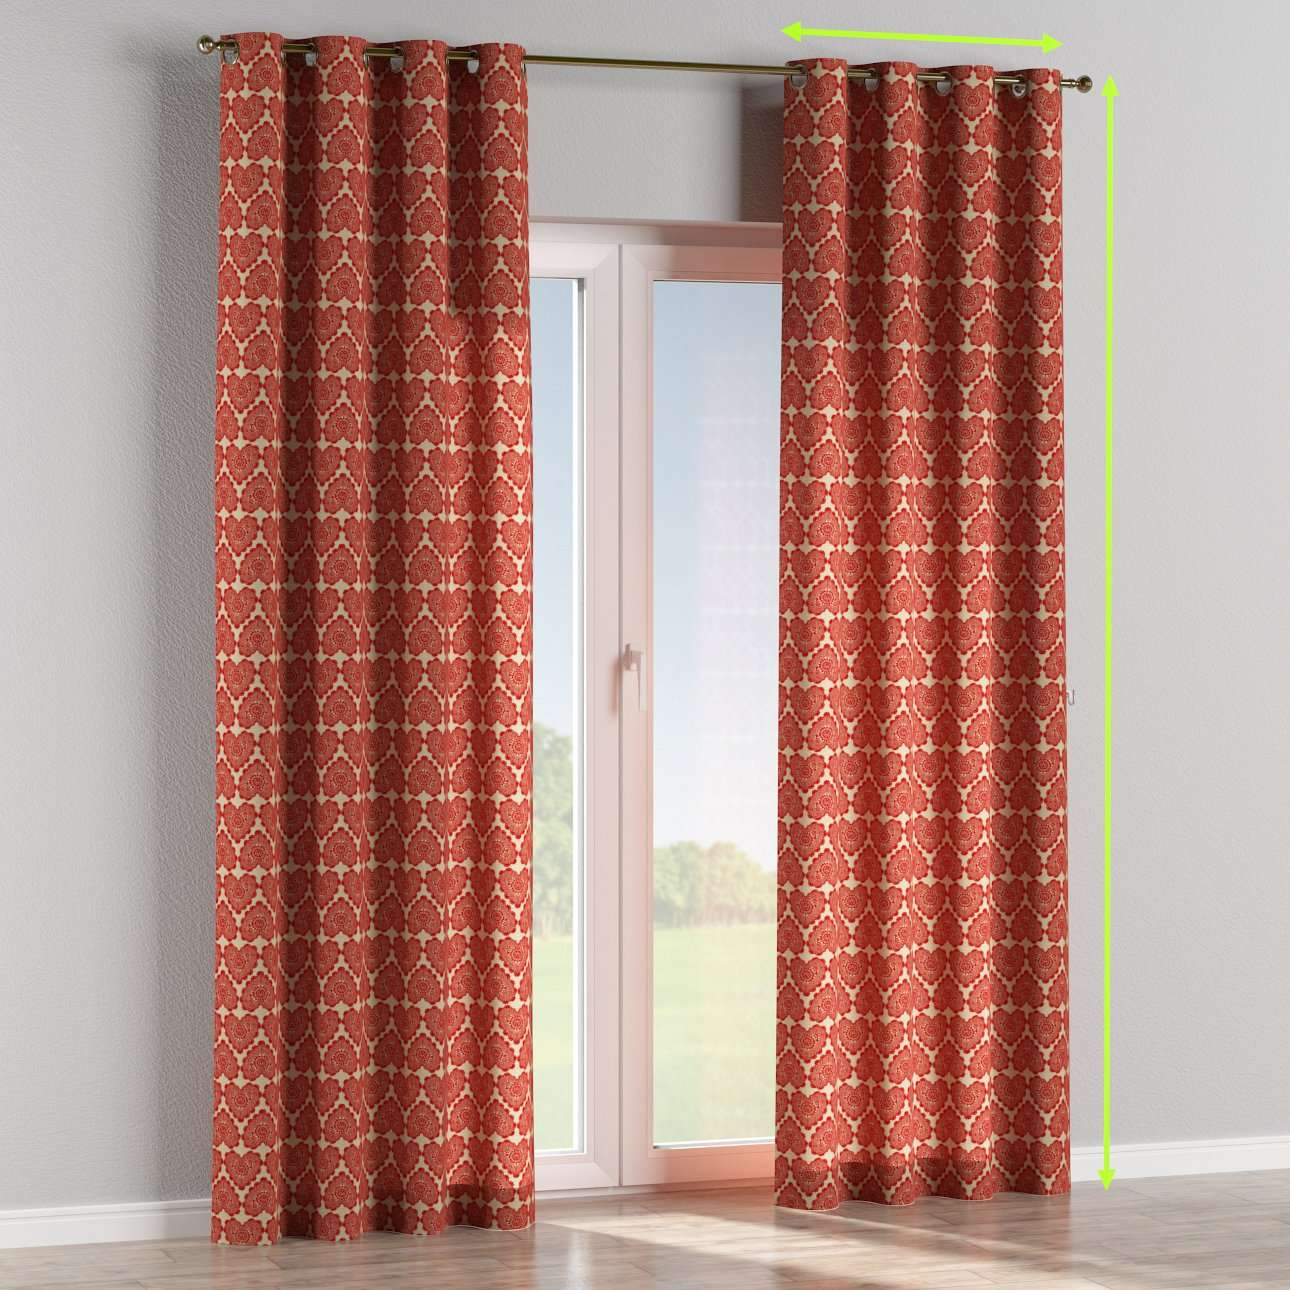 Eyelet curtains in collection Freestyle, fabric: 629-17